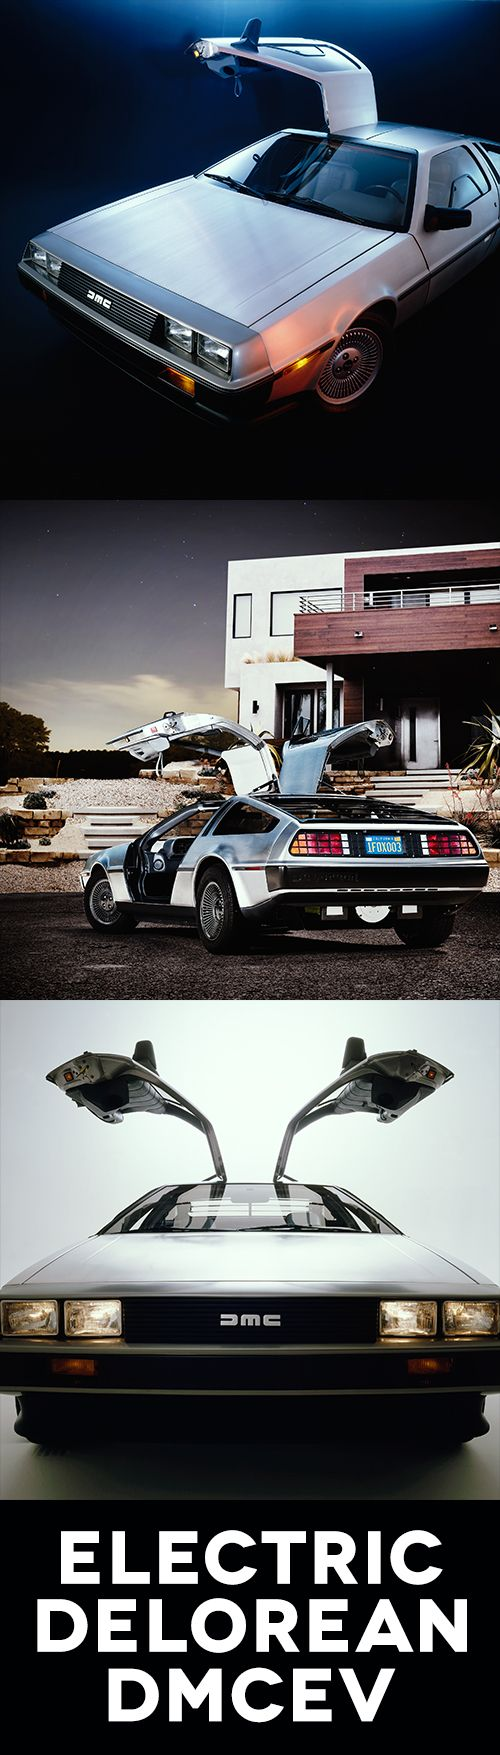 f you're a fan of Back to the Future you'll know that you're looking at a DeLorean, quite possibly one of the most iconic vehicles of the 20th century (and quite a few other centuries for that matter). But this isn't just any DeLorean, it's an electric DeLorean. Great Scott!  Its AC induction liquid-cooled electric motor packs enough oomph (260 horsepower to be precise) to make Doc Brown's hair turn white and stand on end.